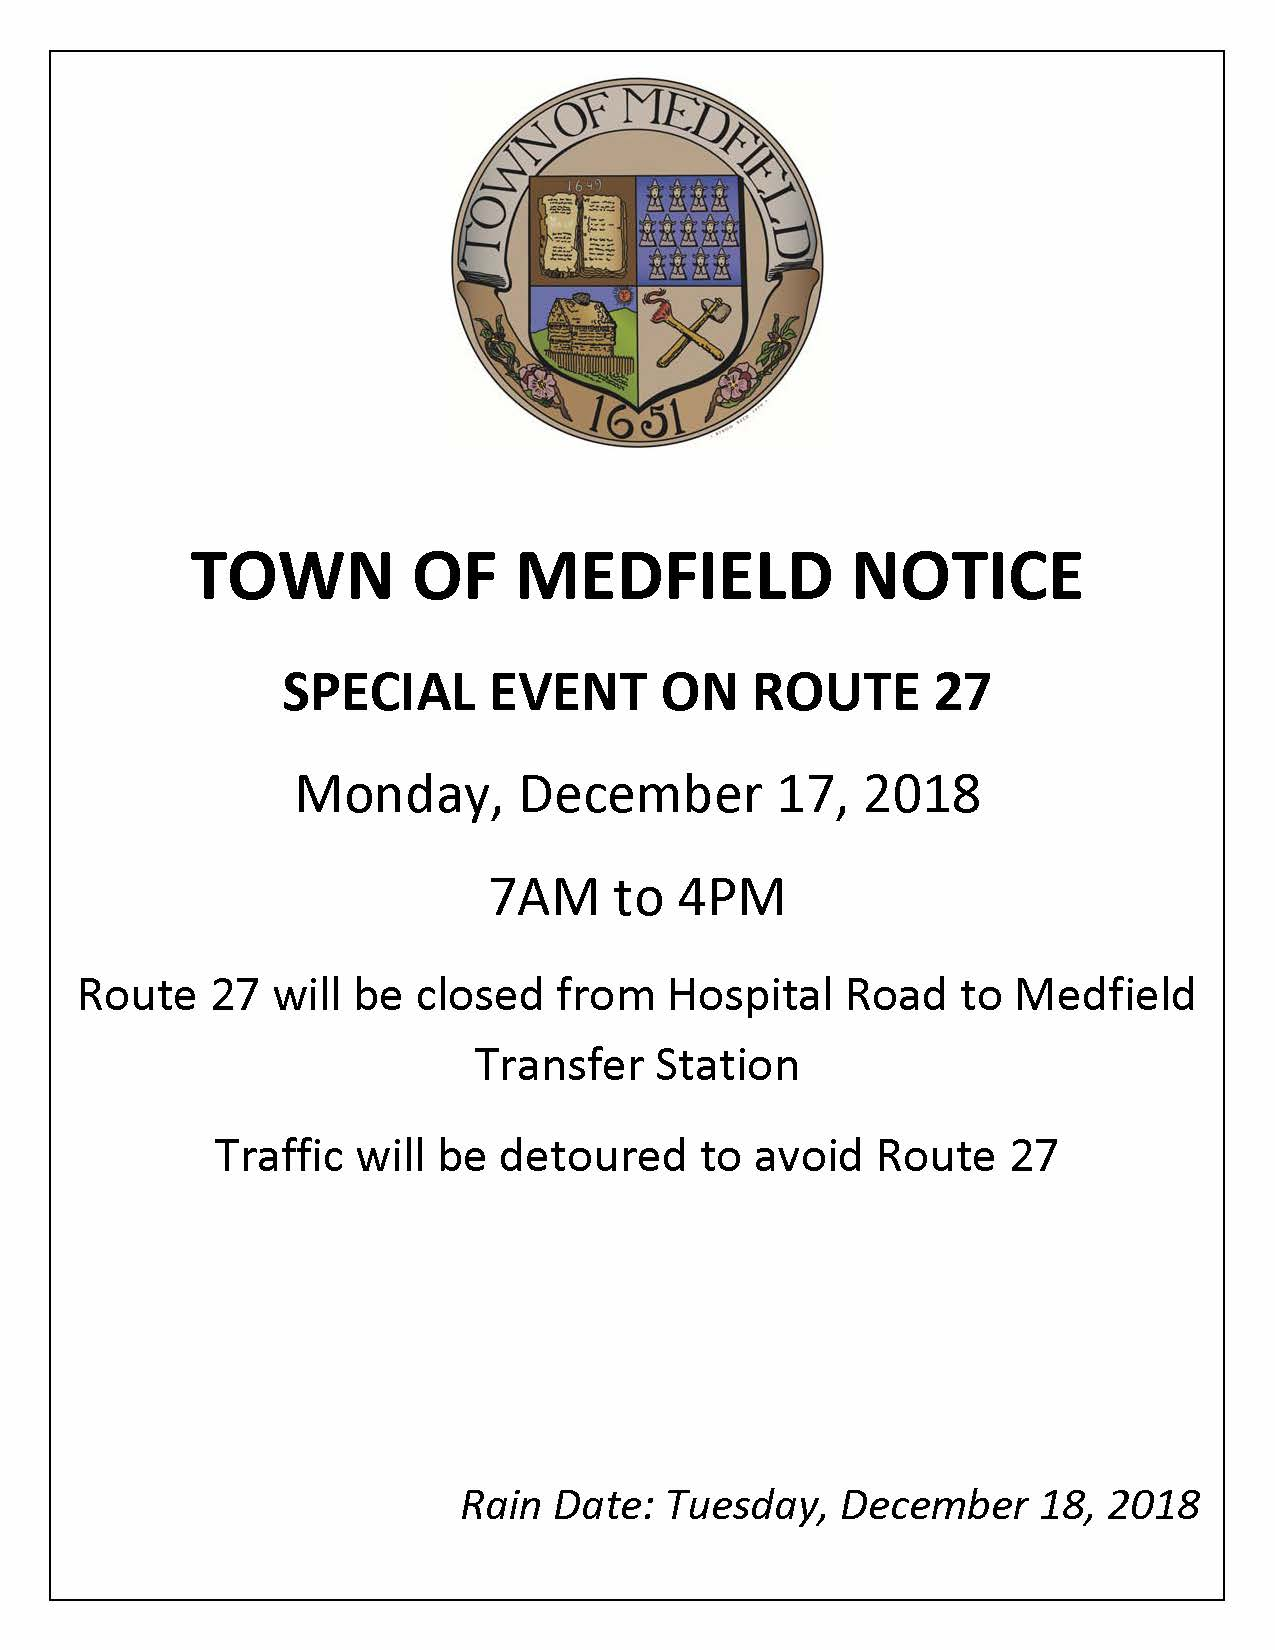 TOWN OF MEDFIELD NOTICE SPECIAL EVENT ON ROUTE 27 Monday, December 17, 2018 7AM to 4PM Route 27 will be closed from Hospital Road to Medfield Transfer Station Traffic will be detoured to avoid Route 27 Rain Date: Tuesday, December 18, 2018